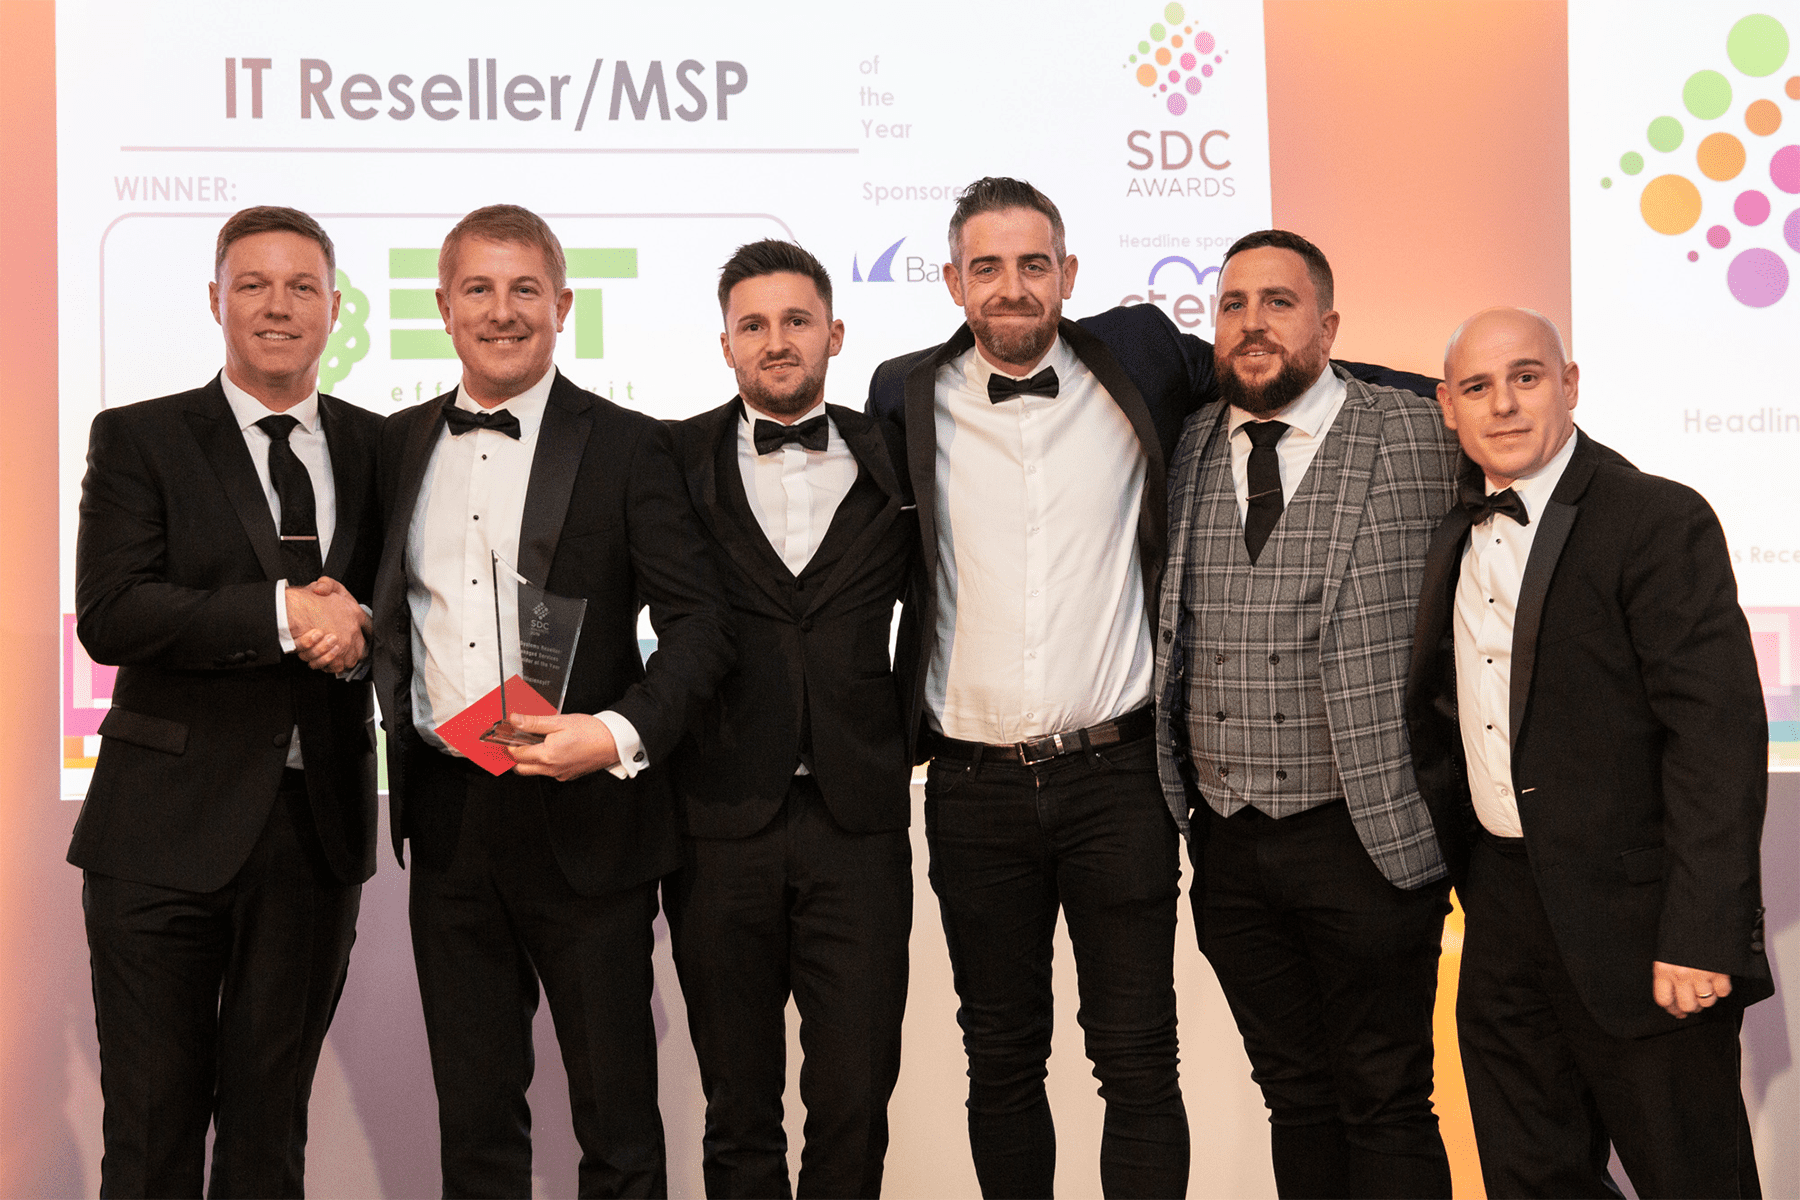 PRESS RELEASE: EfficiencyIT Win 'IT Systems Reseller of The Year' at SDC Awards 2019